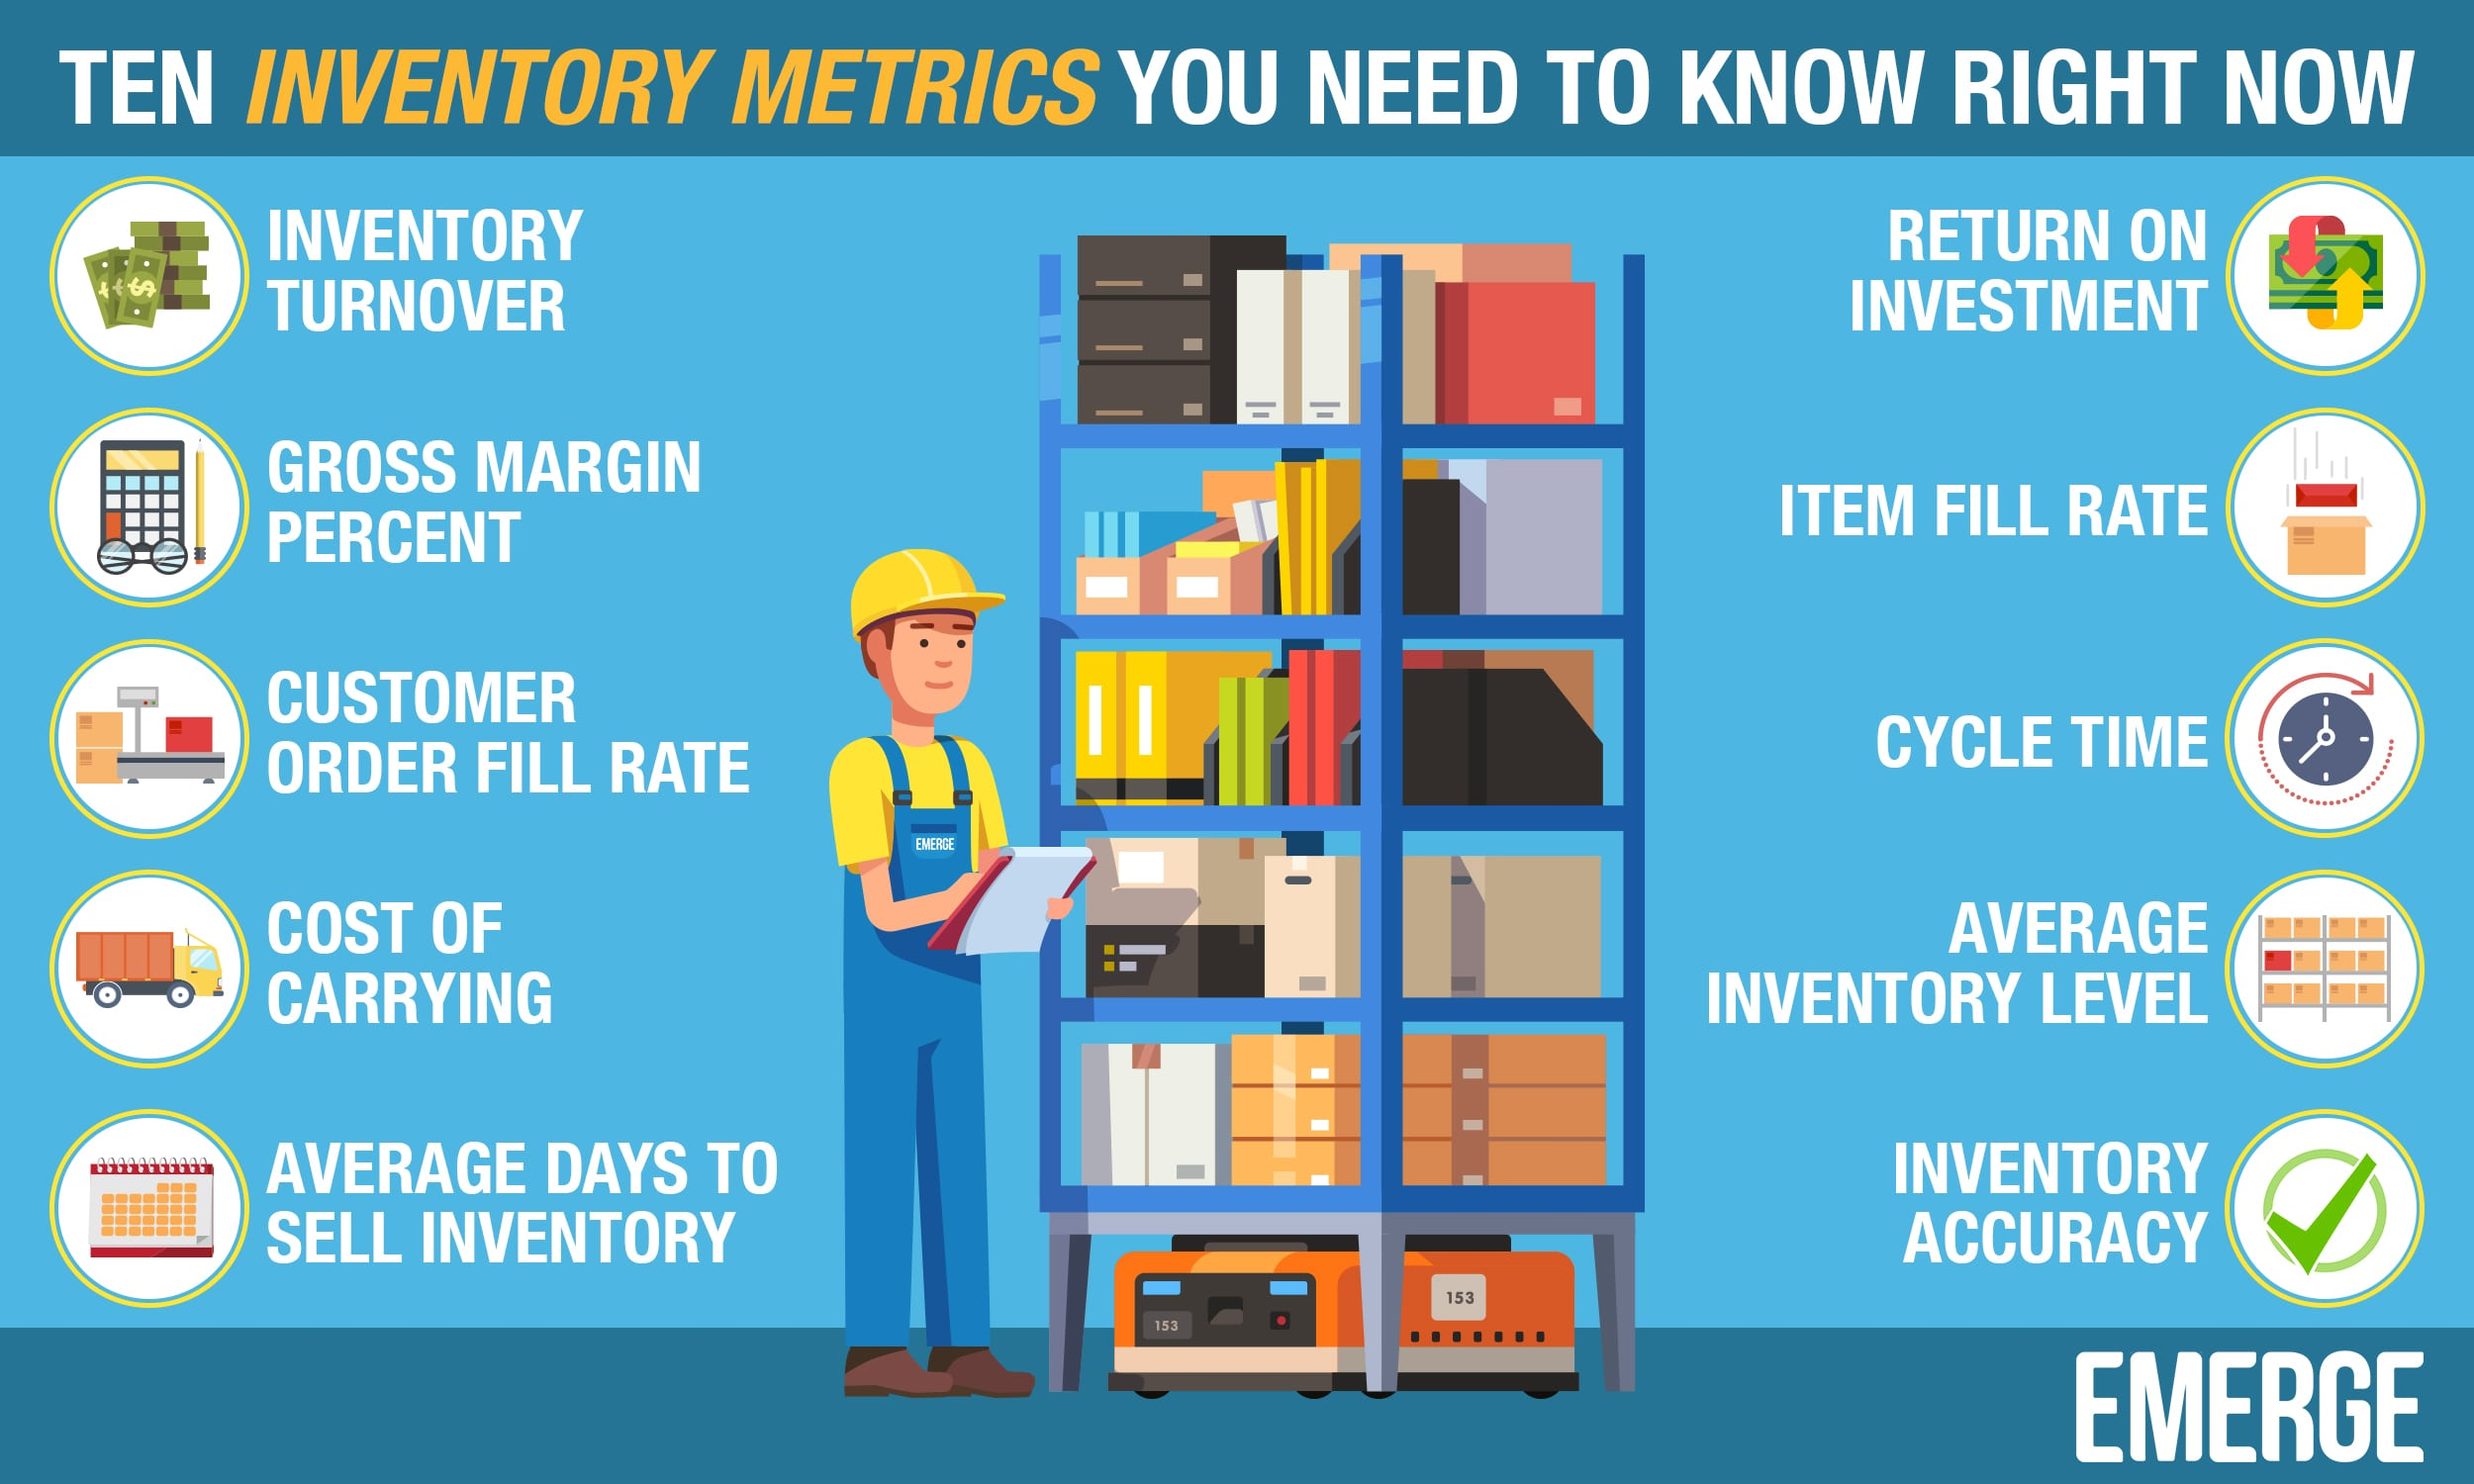 10 Inventory Metrics You Need to Know - Inventory Management